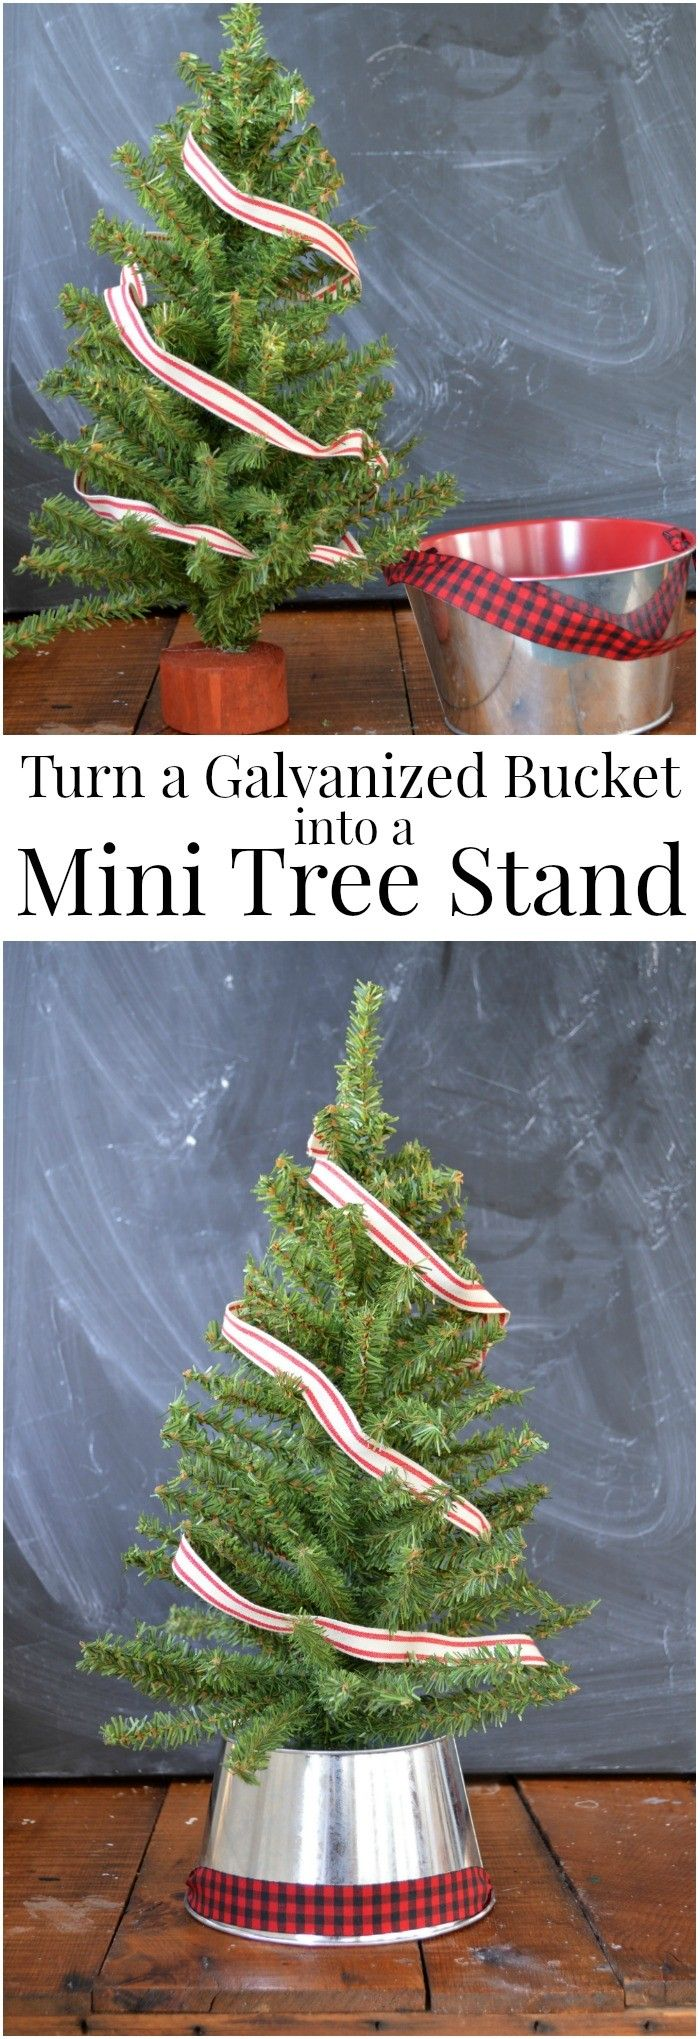 TURN A GALVANIZED BUCKET INTO A MINI TREE STAND Diy